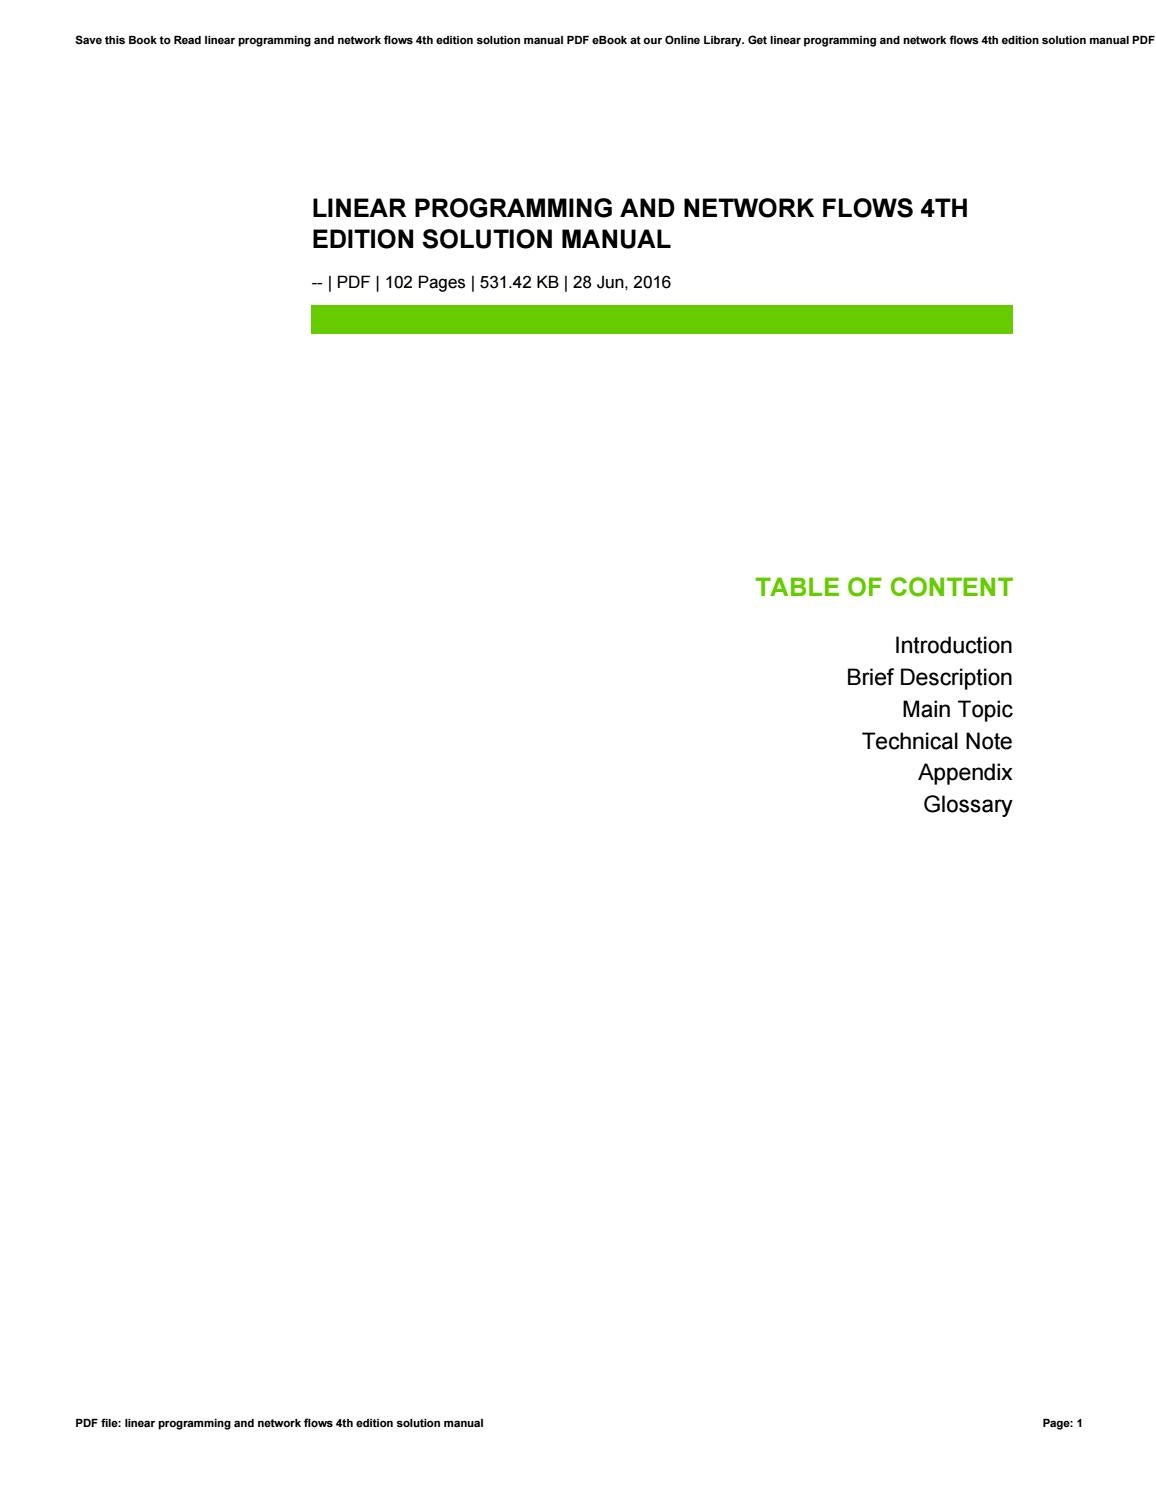 Linear programming and network flows 4th edition solution manual by  dinno98masio - issuu